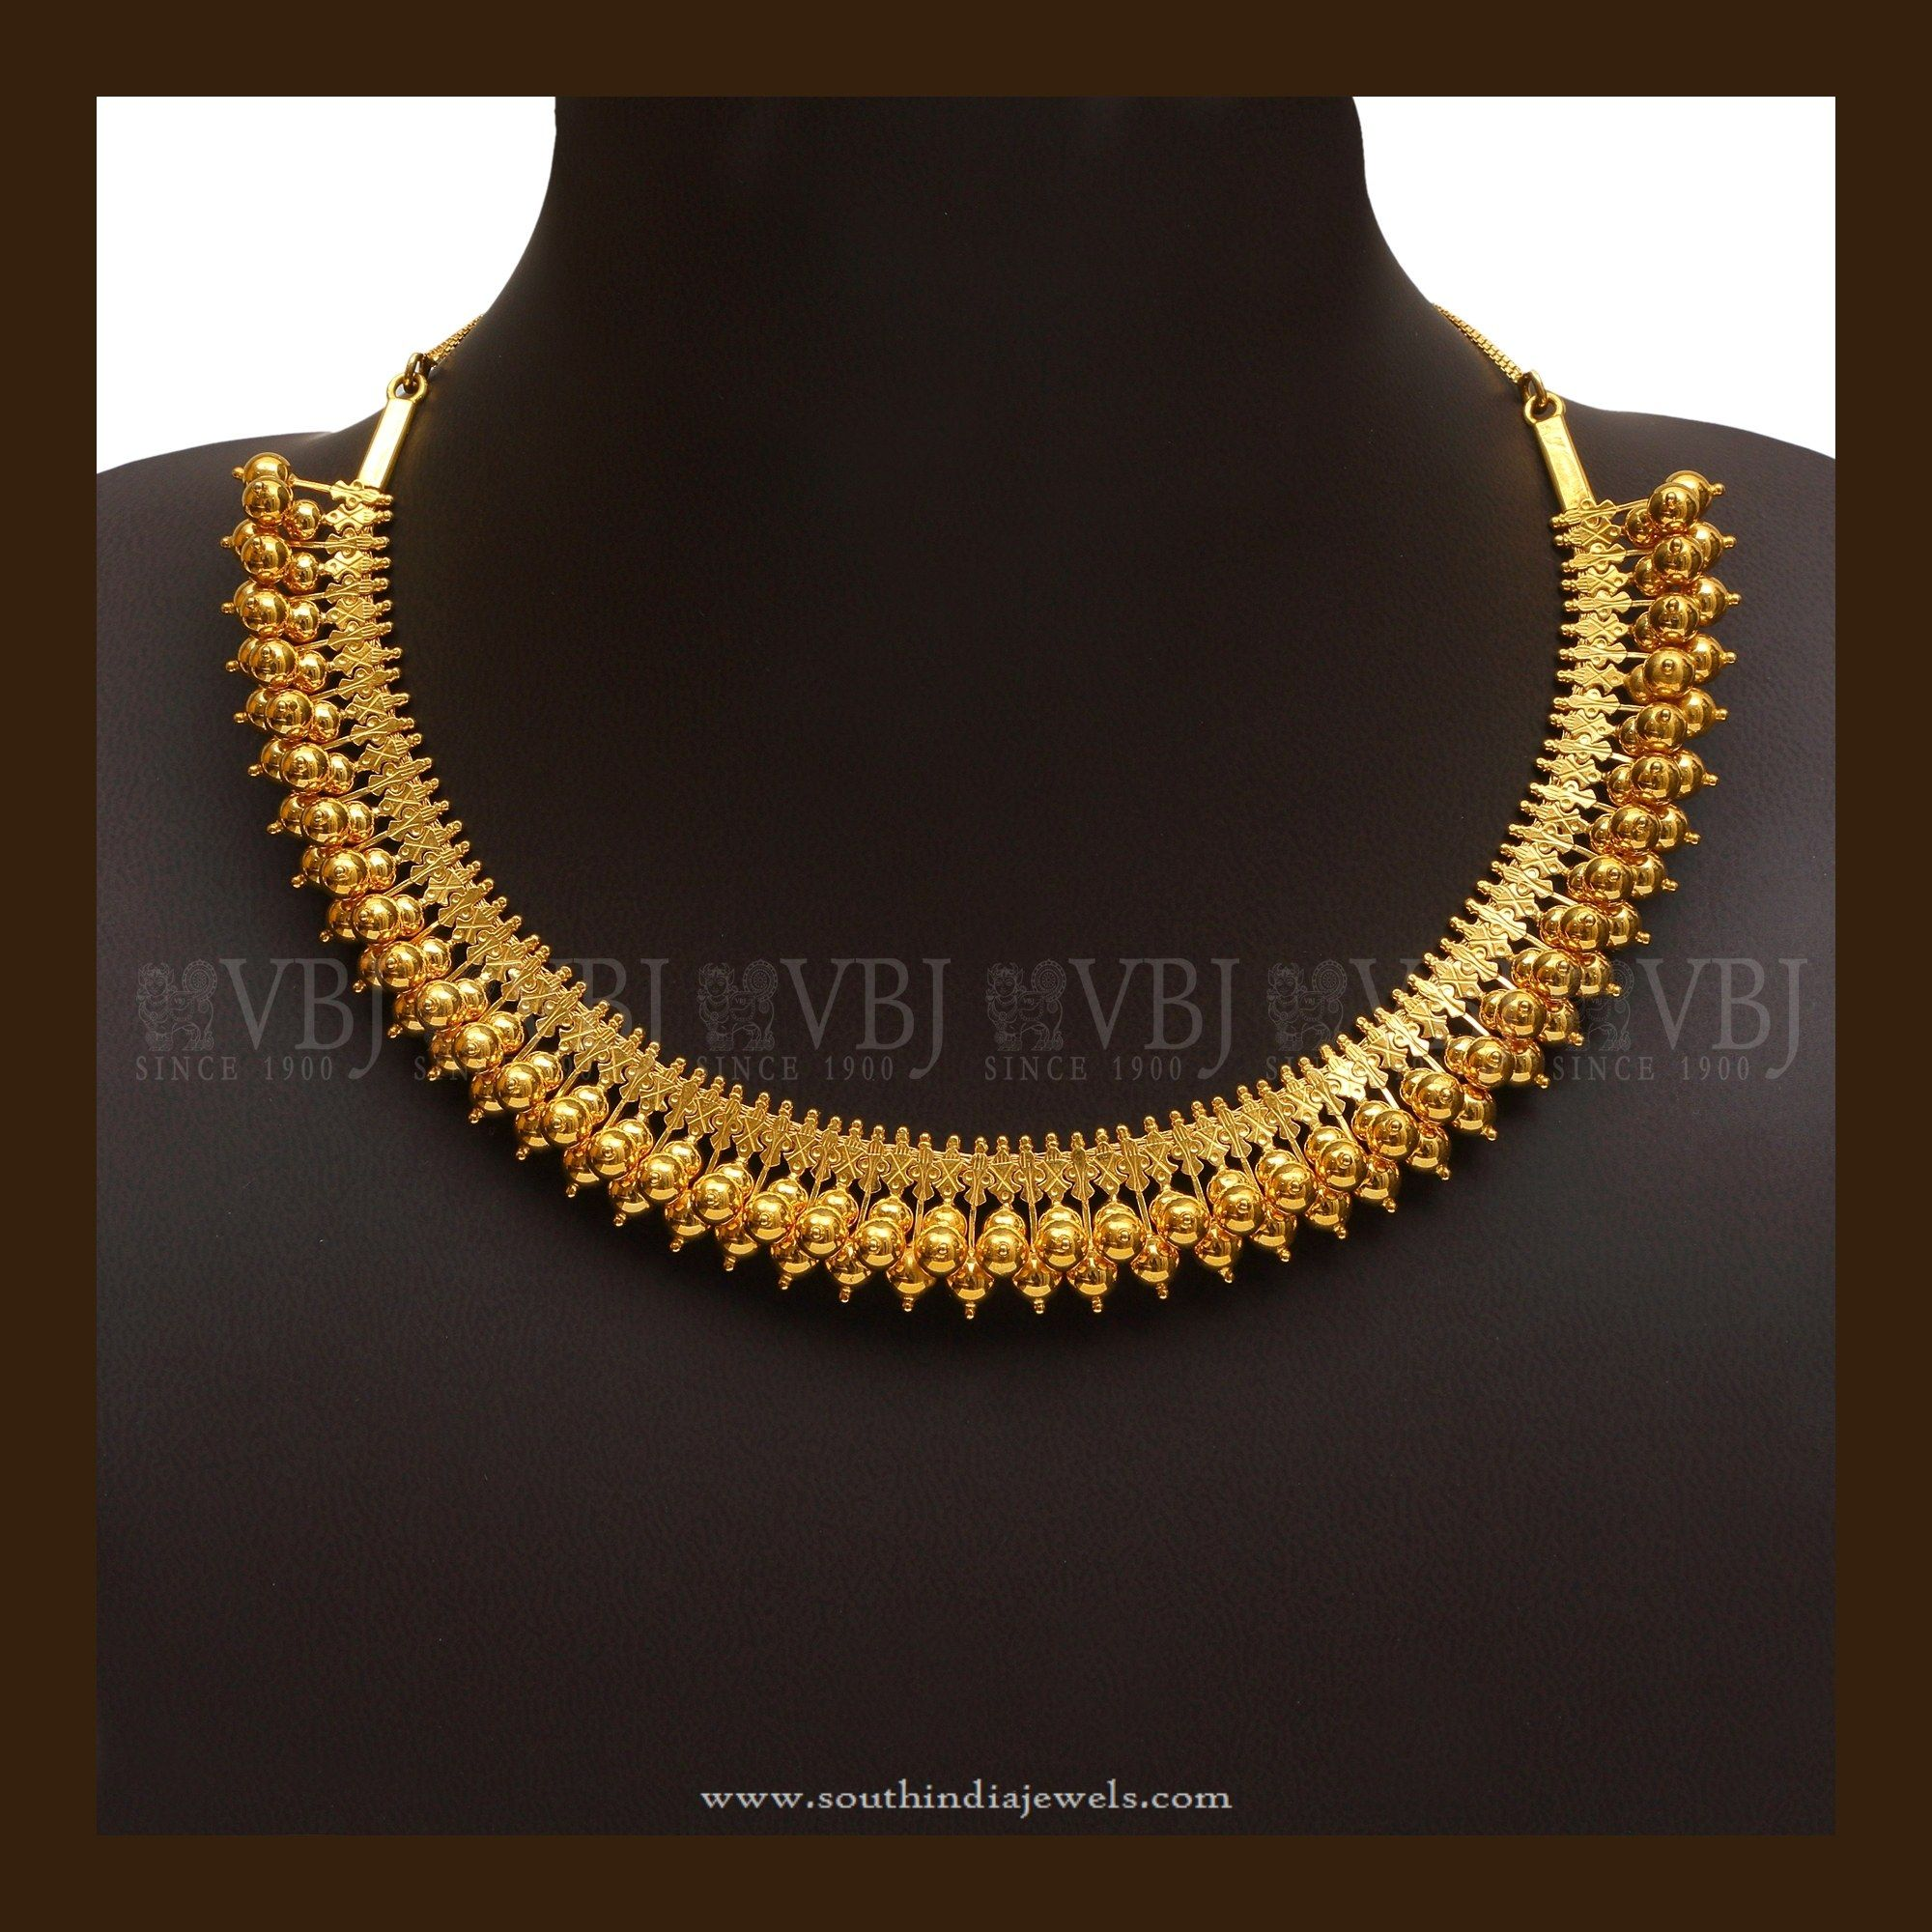 handmade jewellery collier designs trap auf bchrung h wei gold brillantverf catalogue